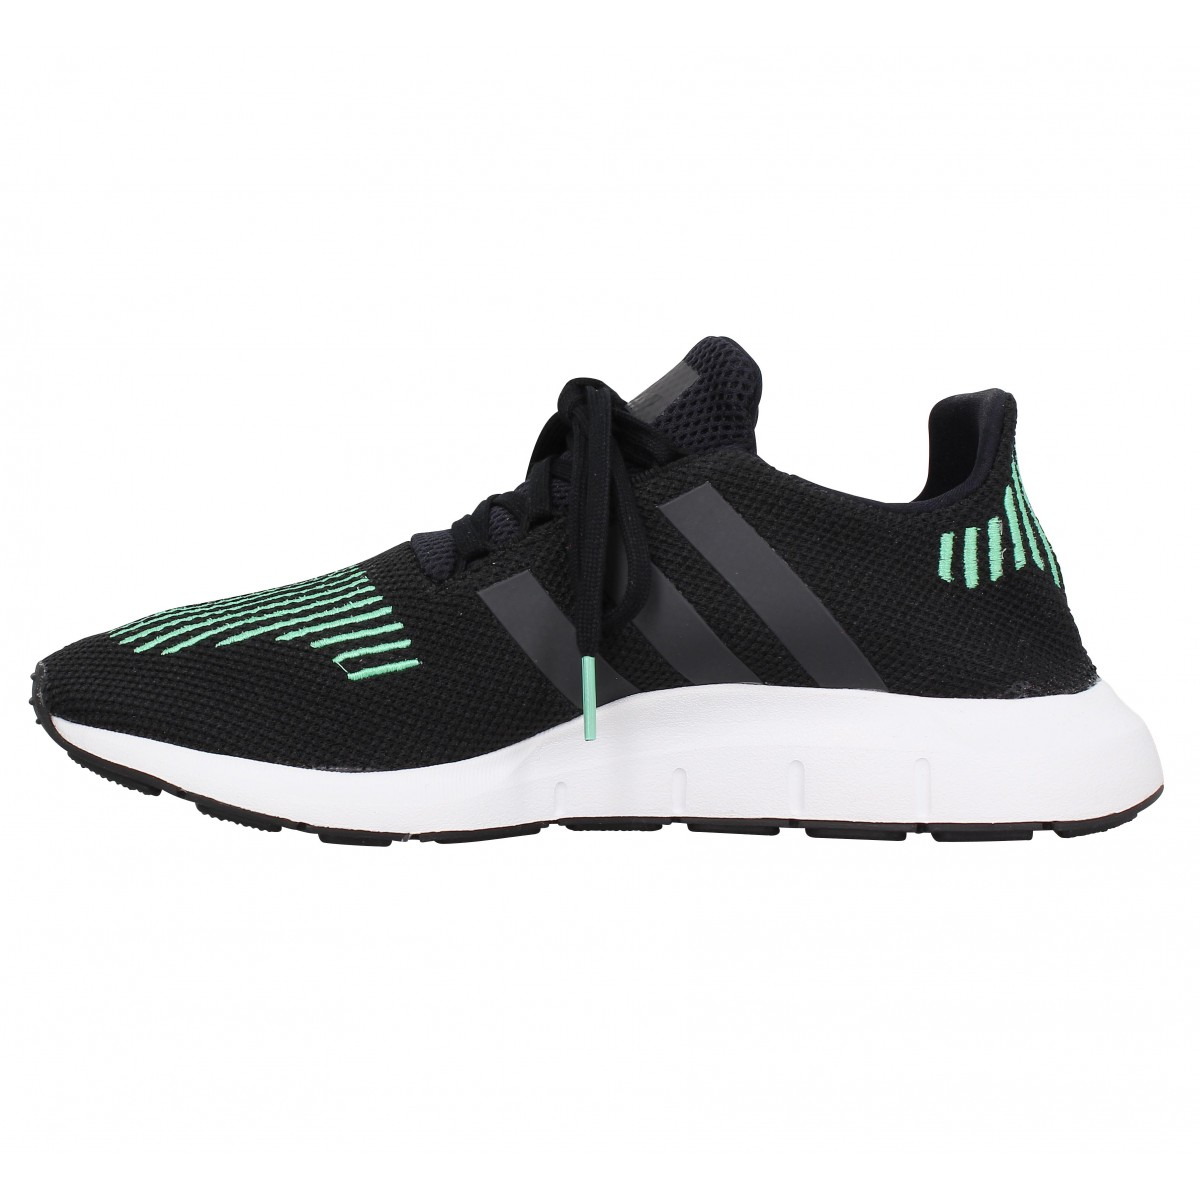 Chaussures Adidas swift run toile homme noir homme | Fanny